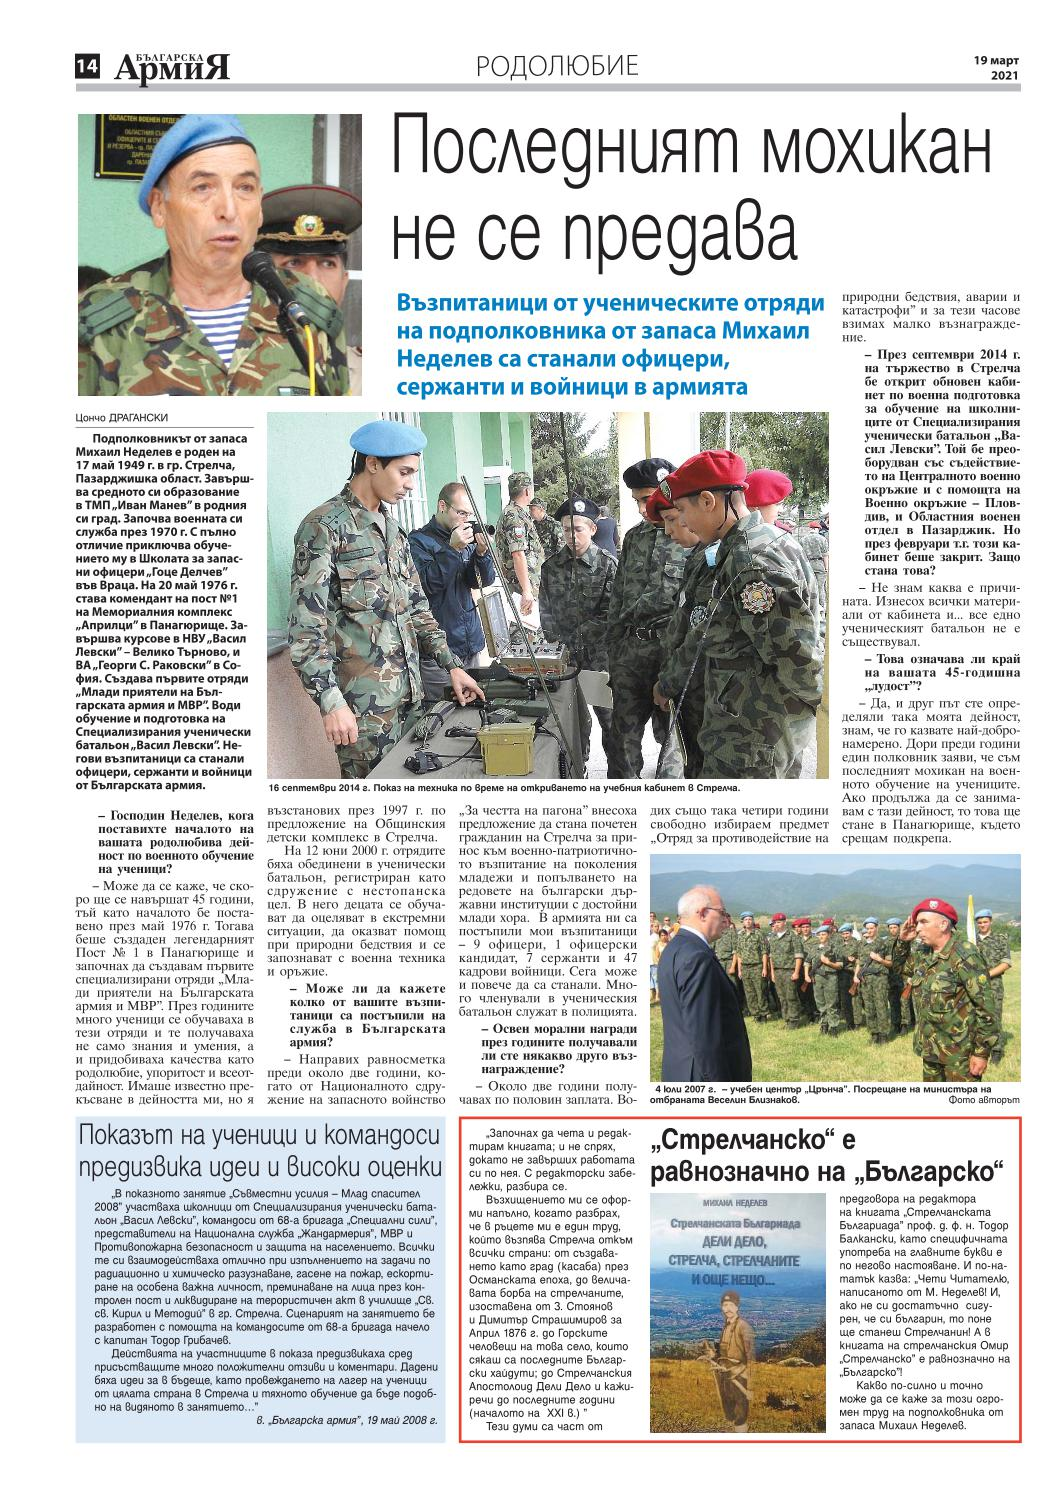 https://armymedia.bg/wp-content/uploads/2021/04/14.page1_-155.jpg